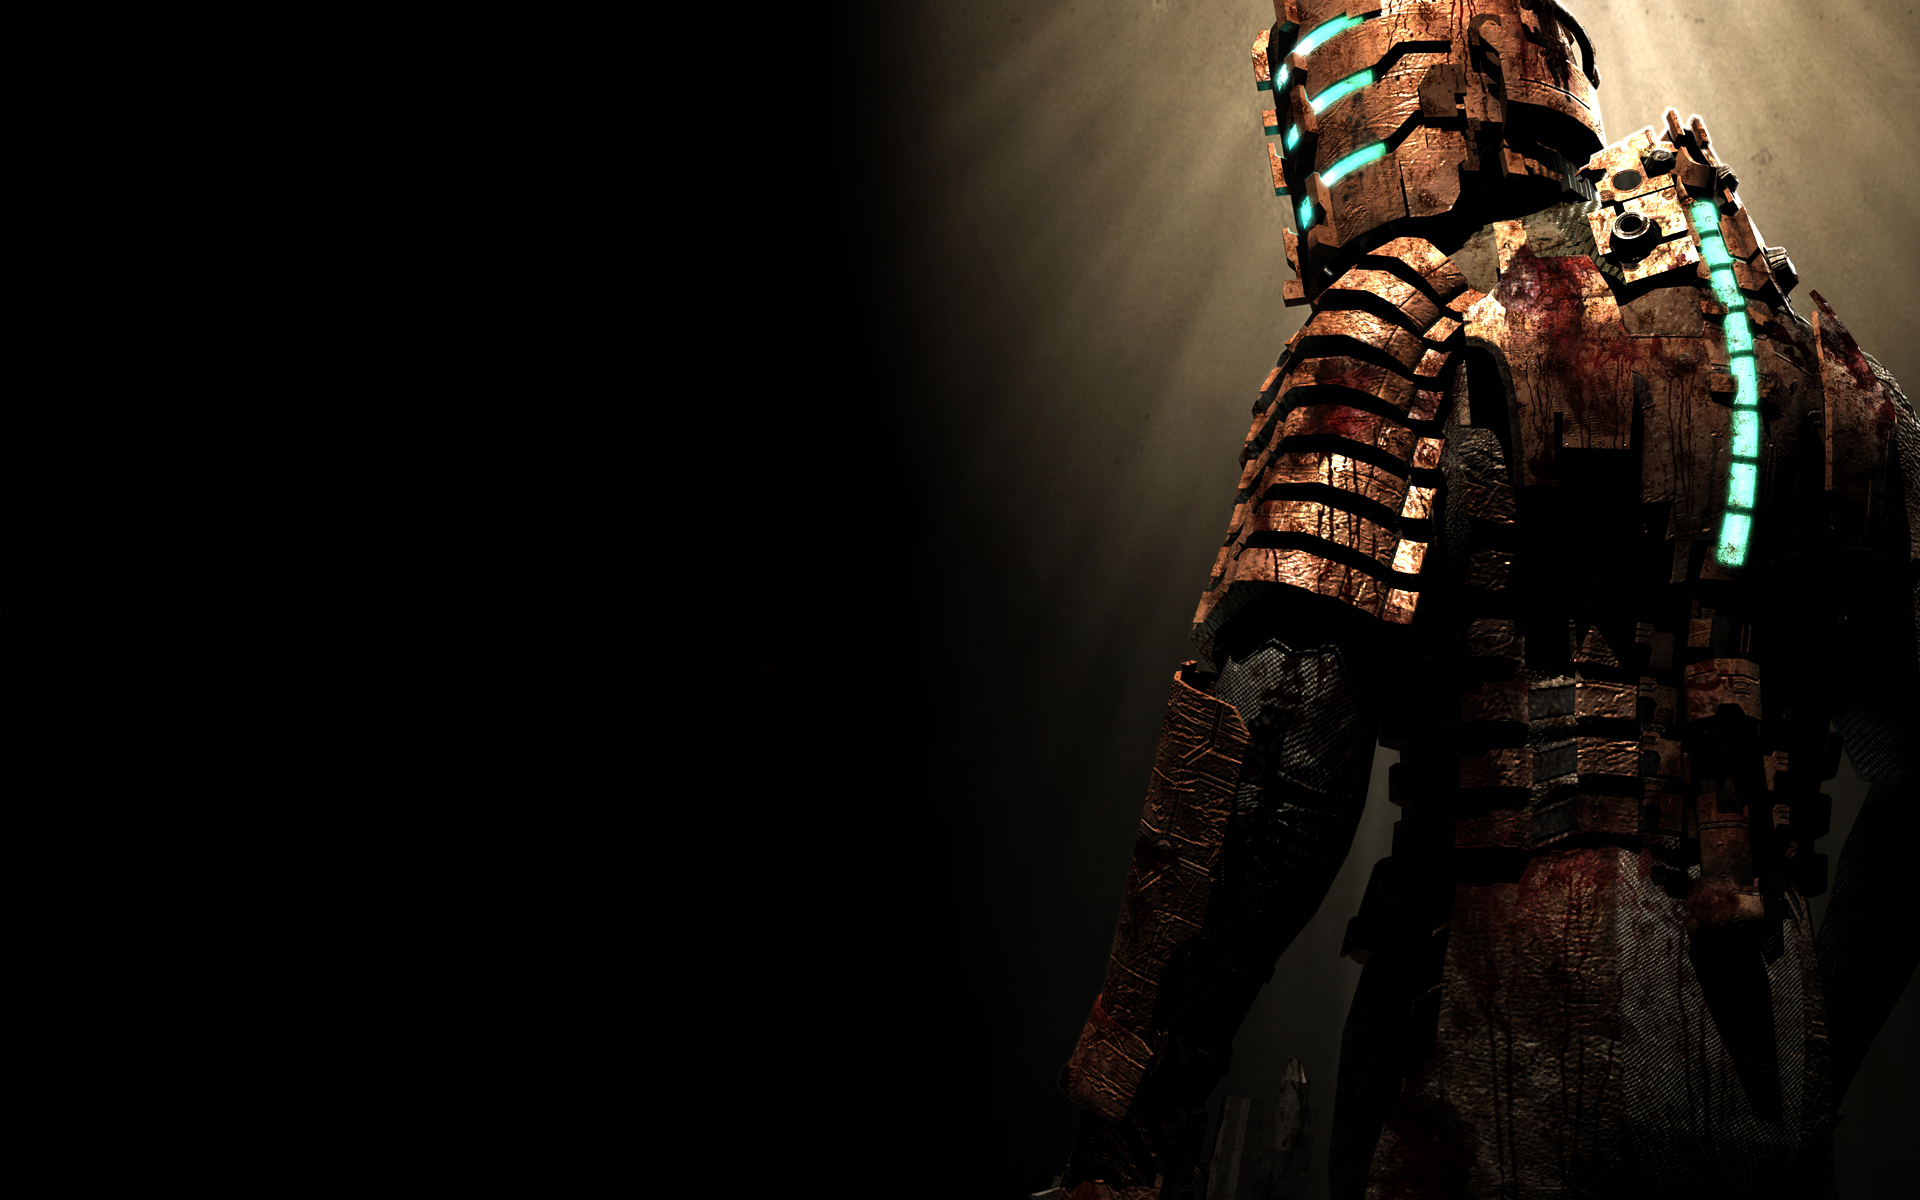 Dead Space 2. Res: 1920x1200 / Size:892kb. Views: 236127